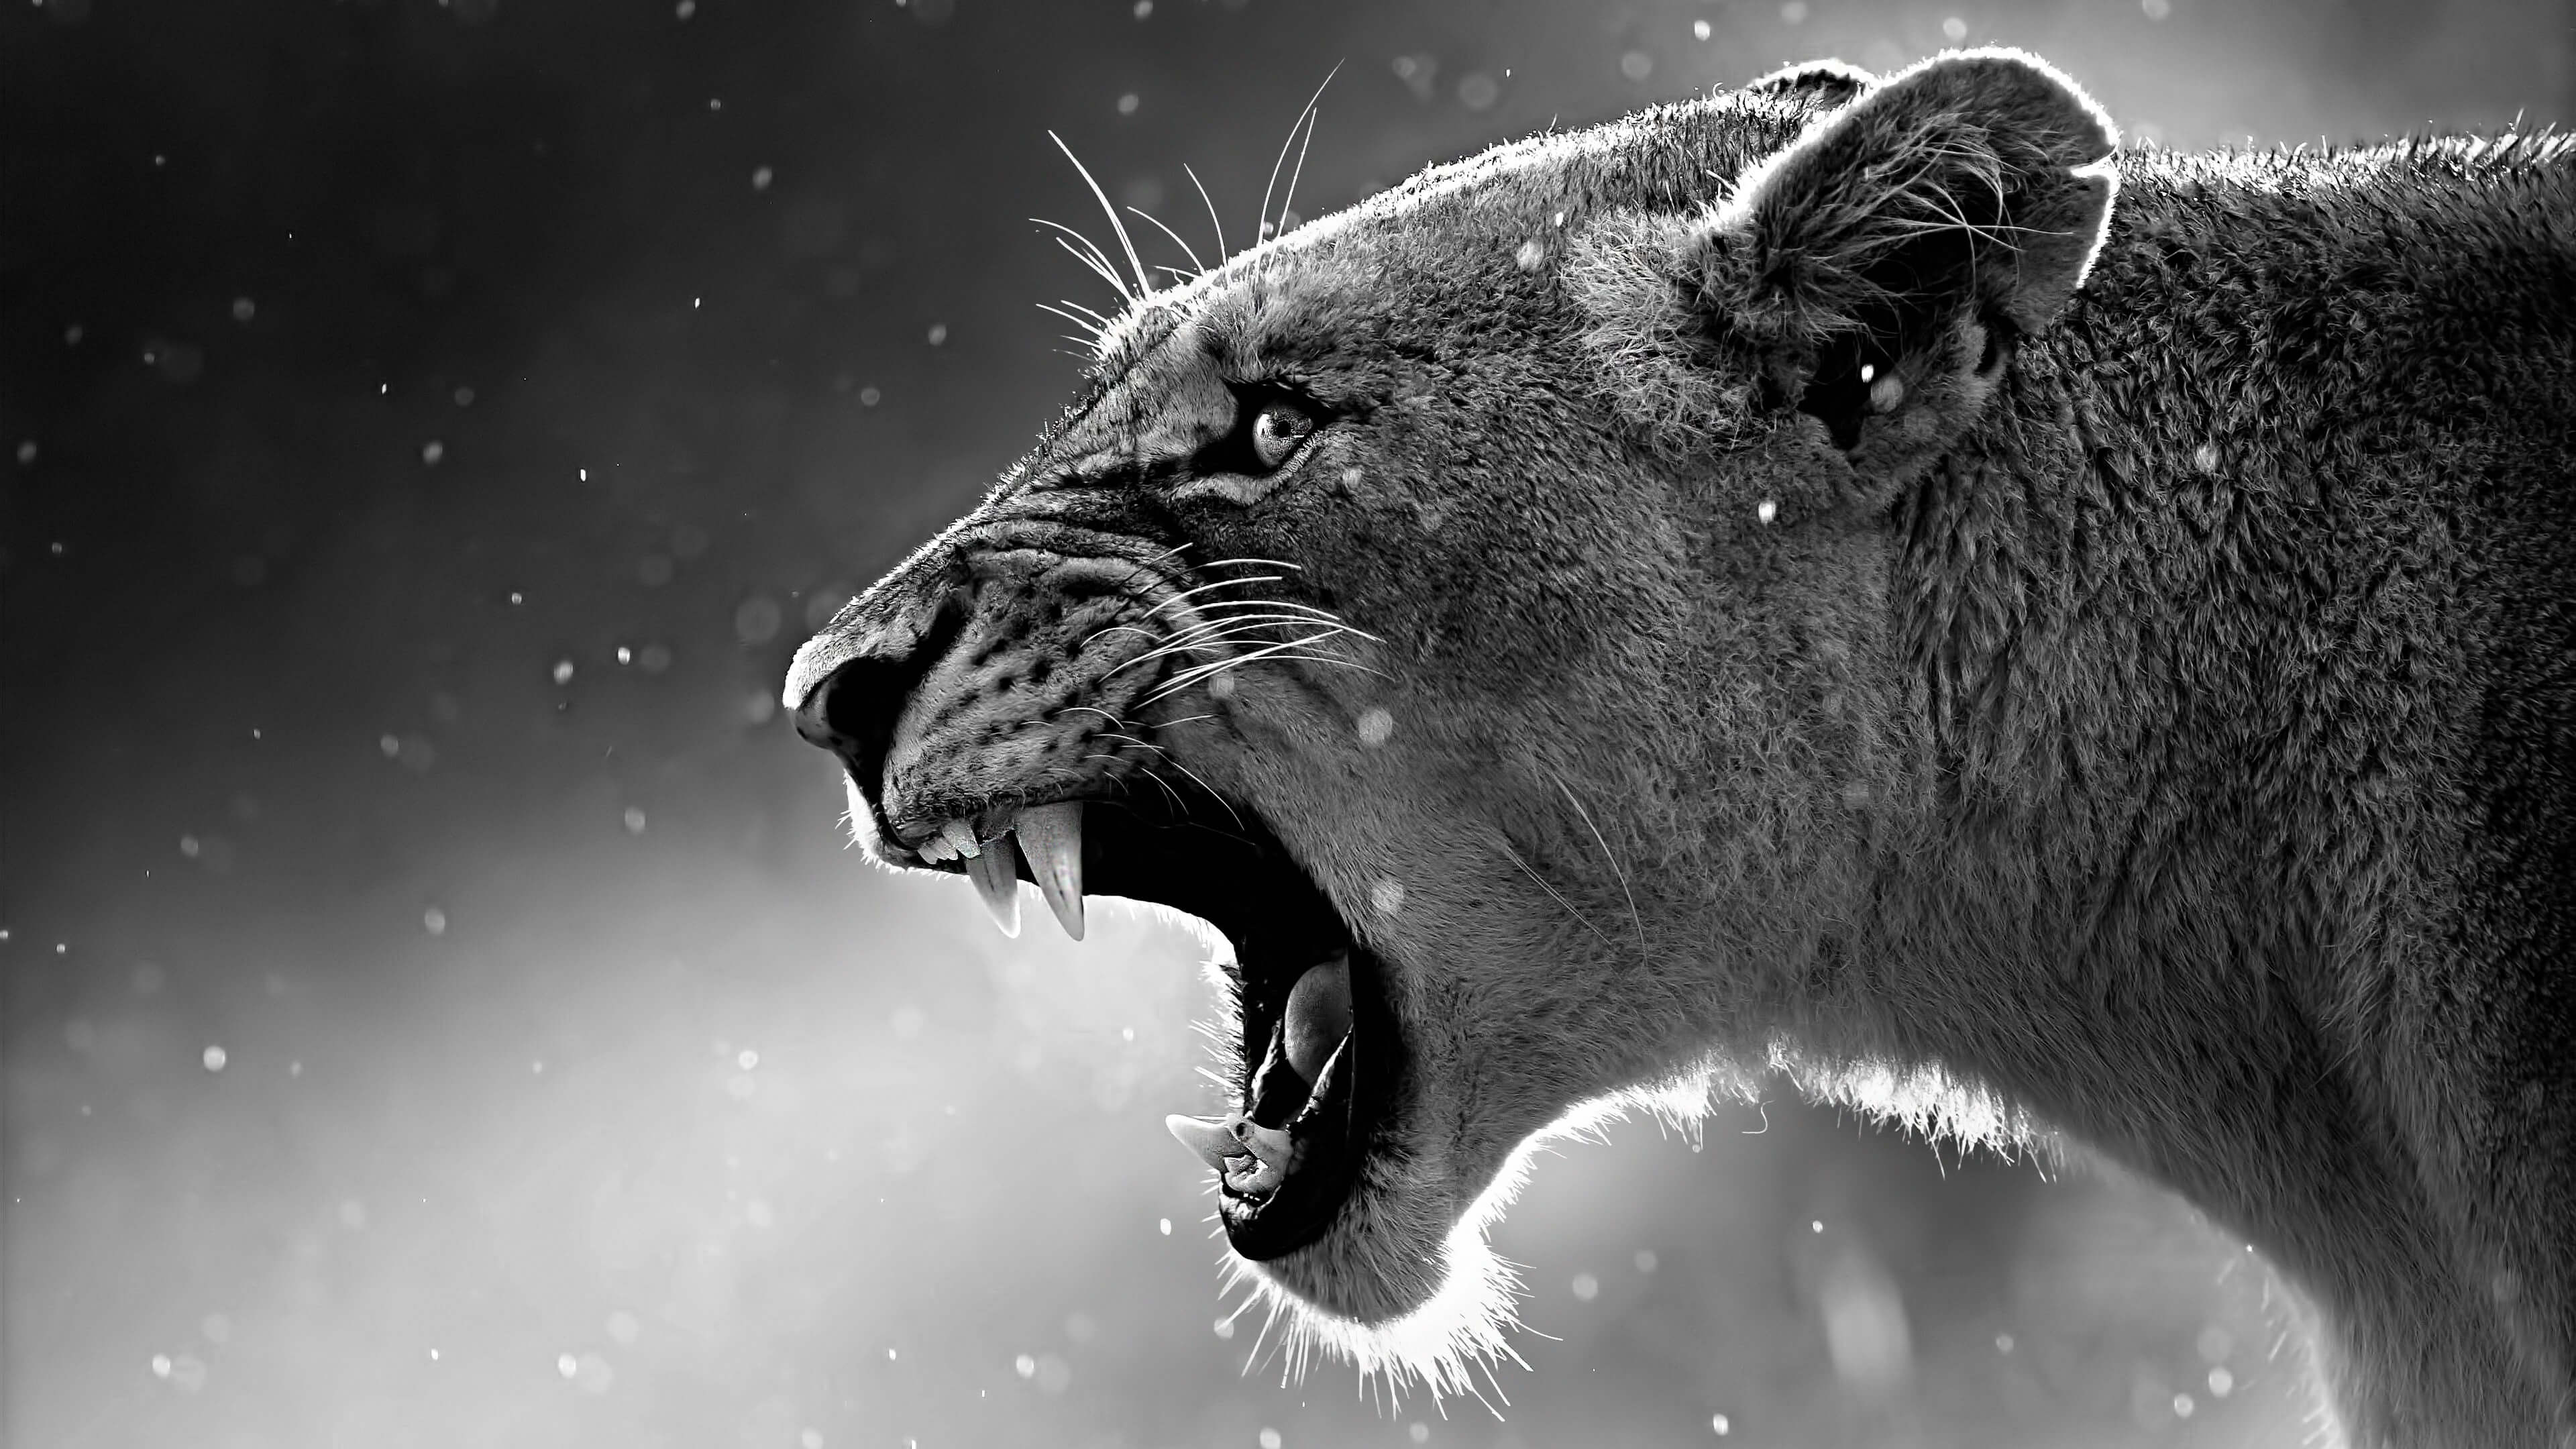 3840x2160 126 4K Ultra HD Lion Wallpapers | Background Images - Wallpaper Abyss